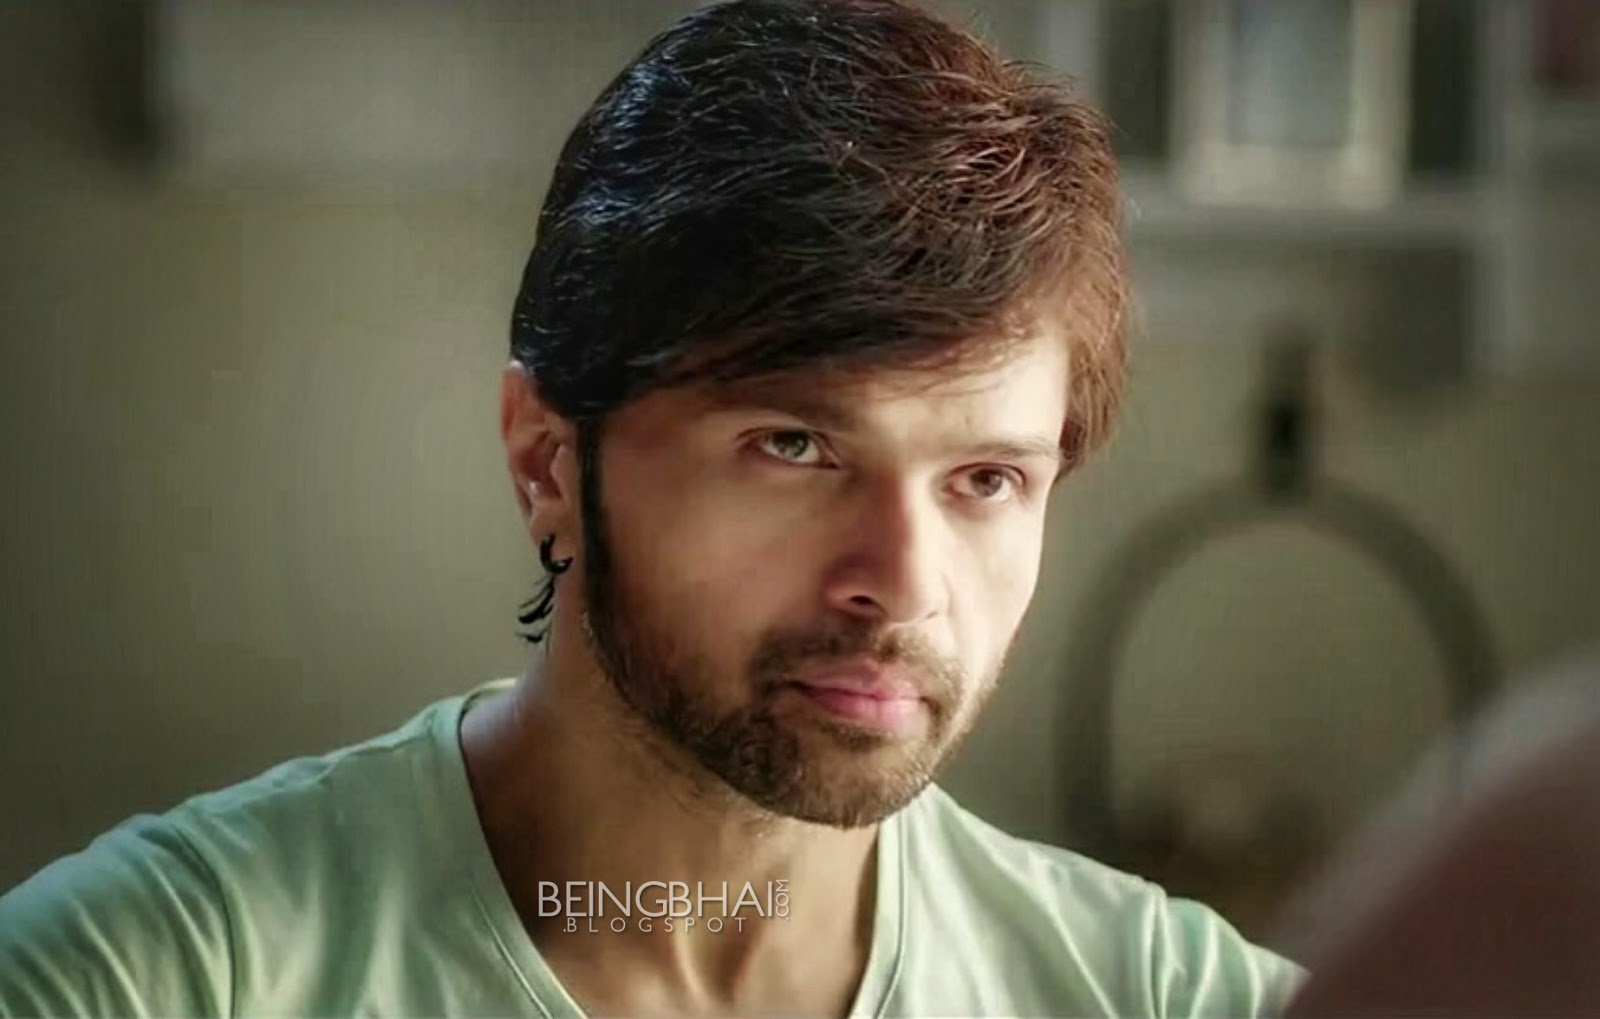 himesh reshammiya wallpapers hd wwwpixsharkcom